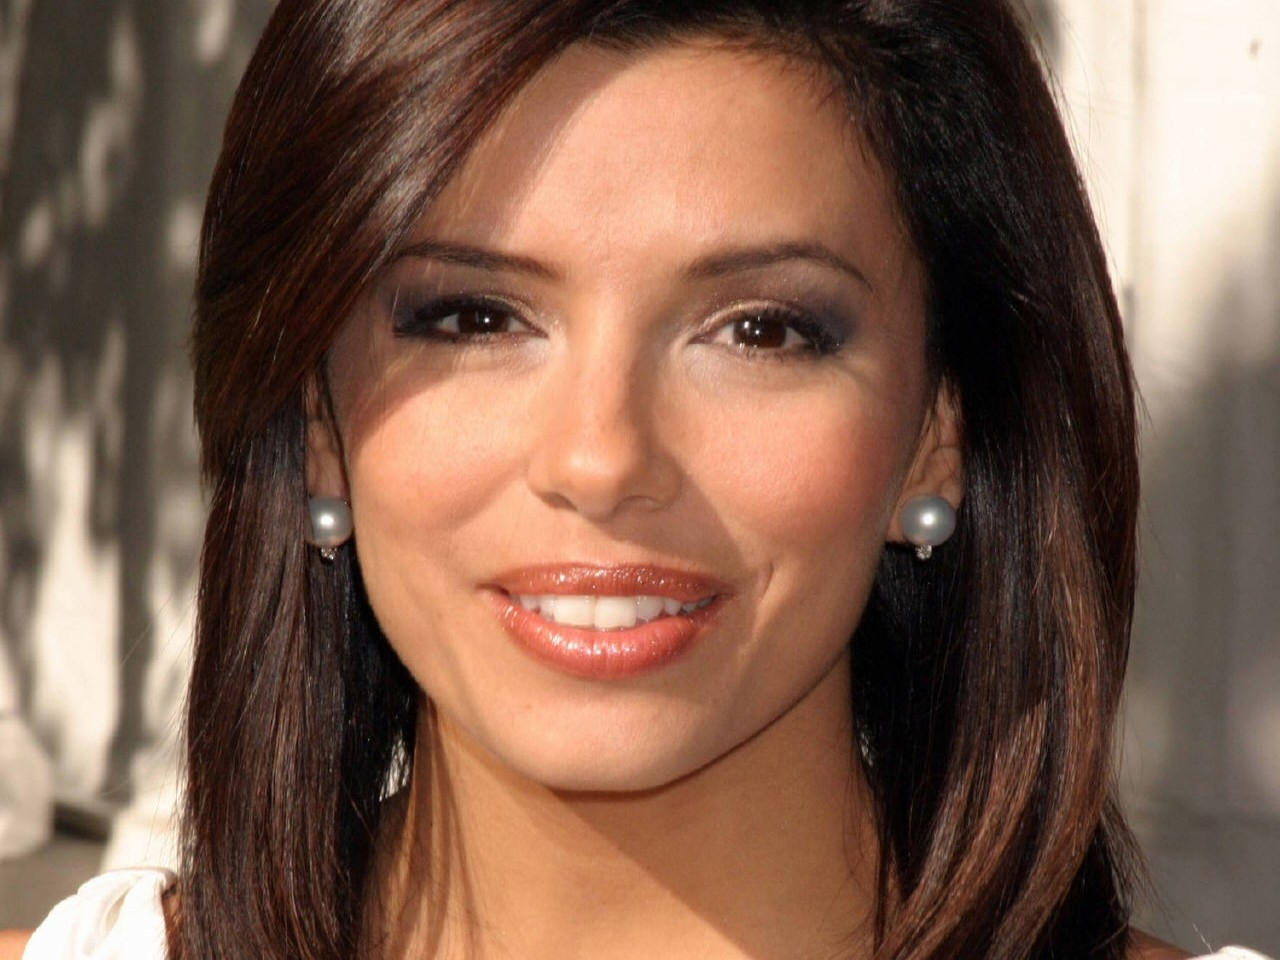 Wallpaper di Eva Longoria Parker - l'attrice interpreta la simpatica Gabrielle Solis in Desperate Housewives